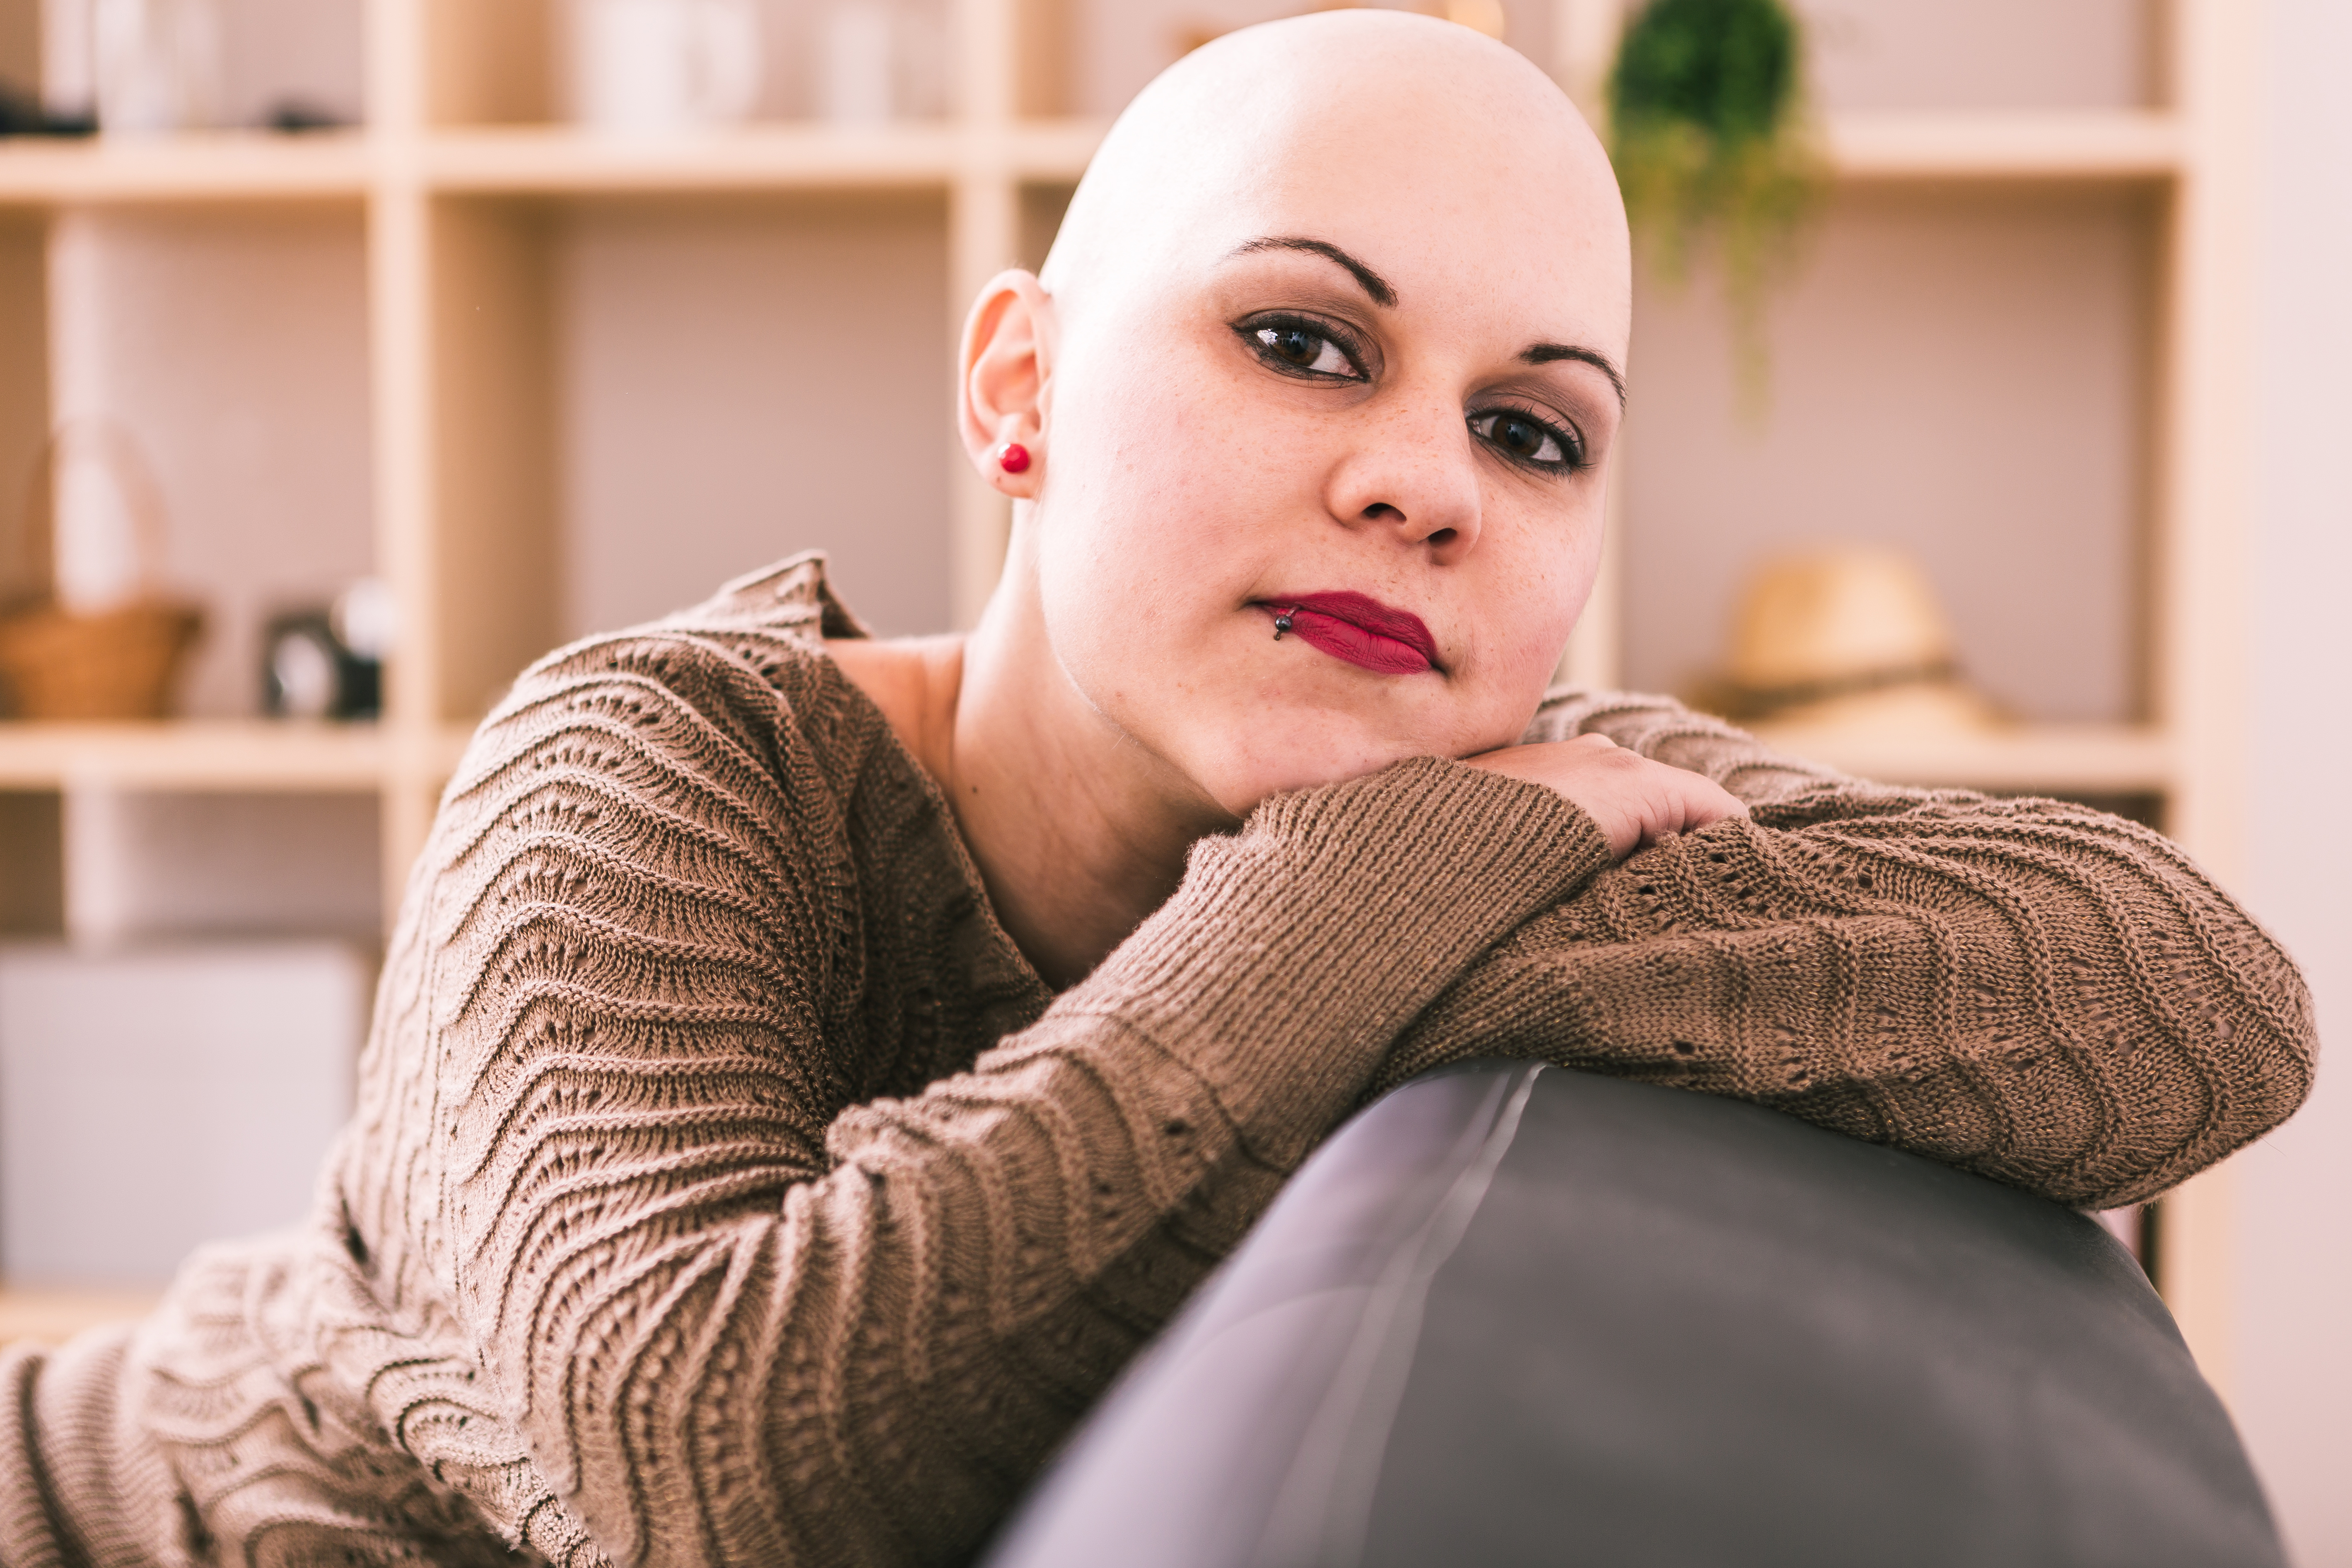 Young woman is overcoming cancer at home